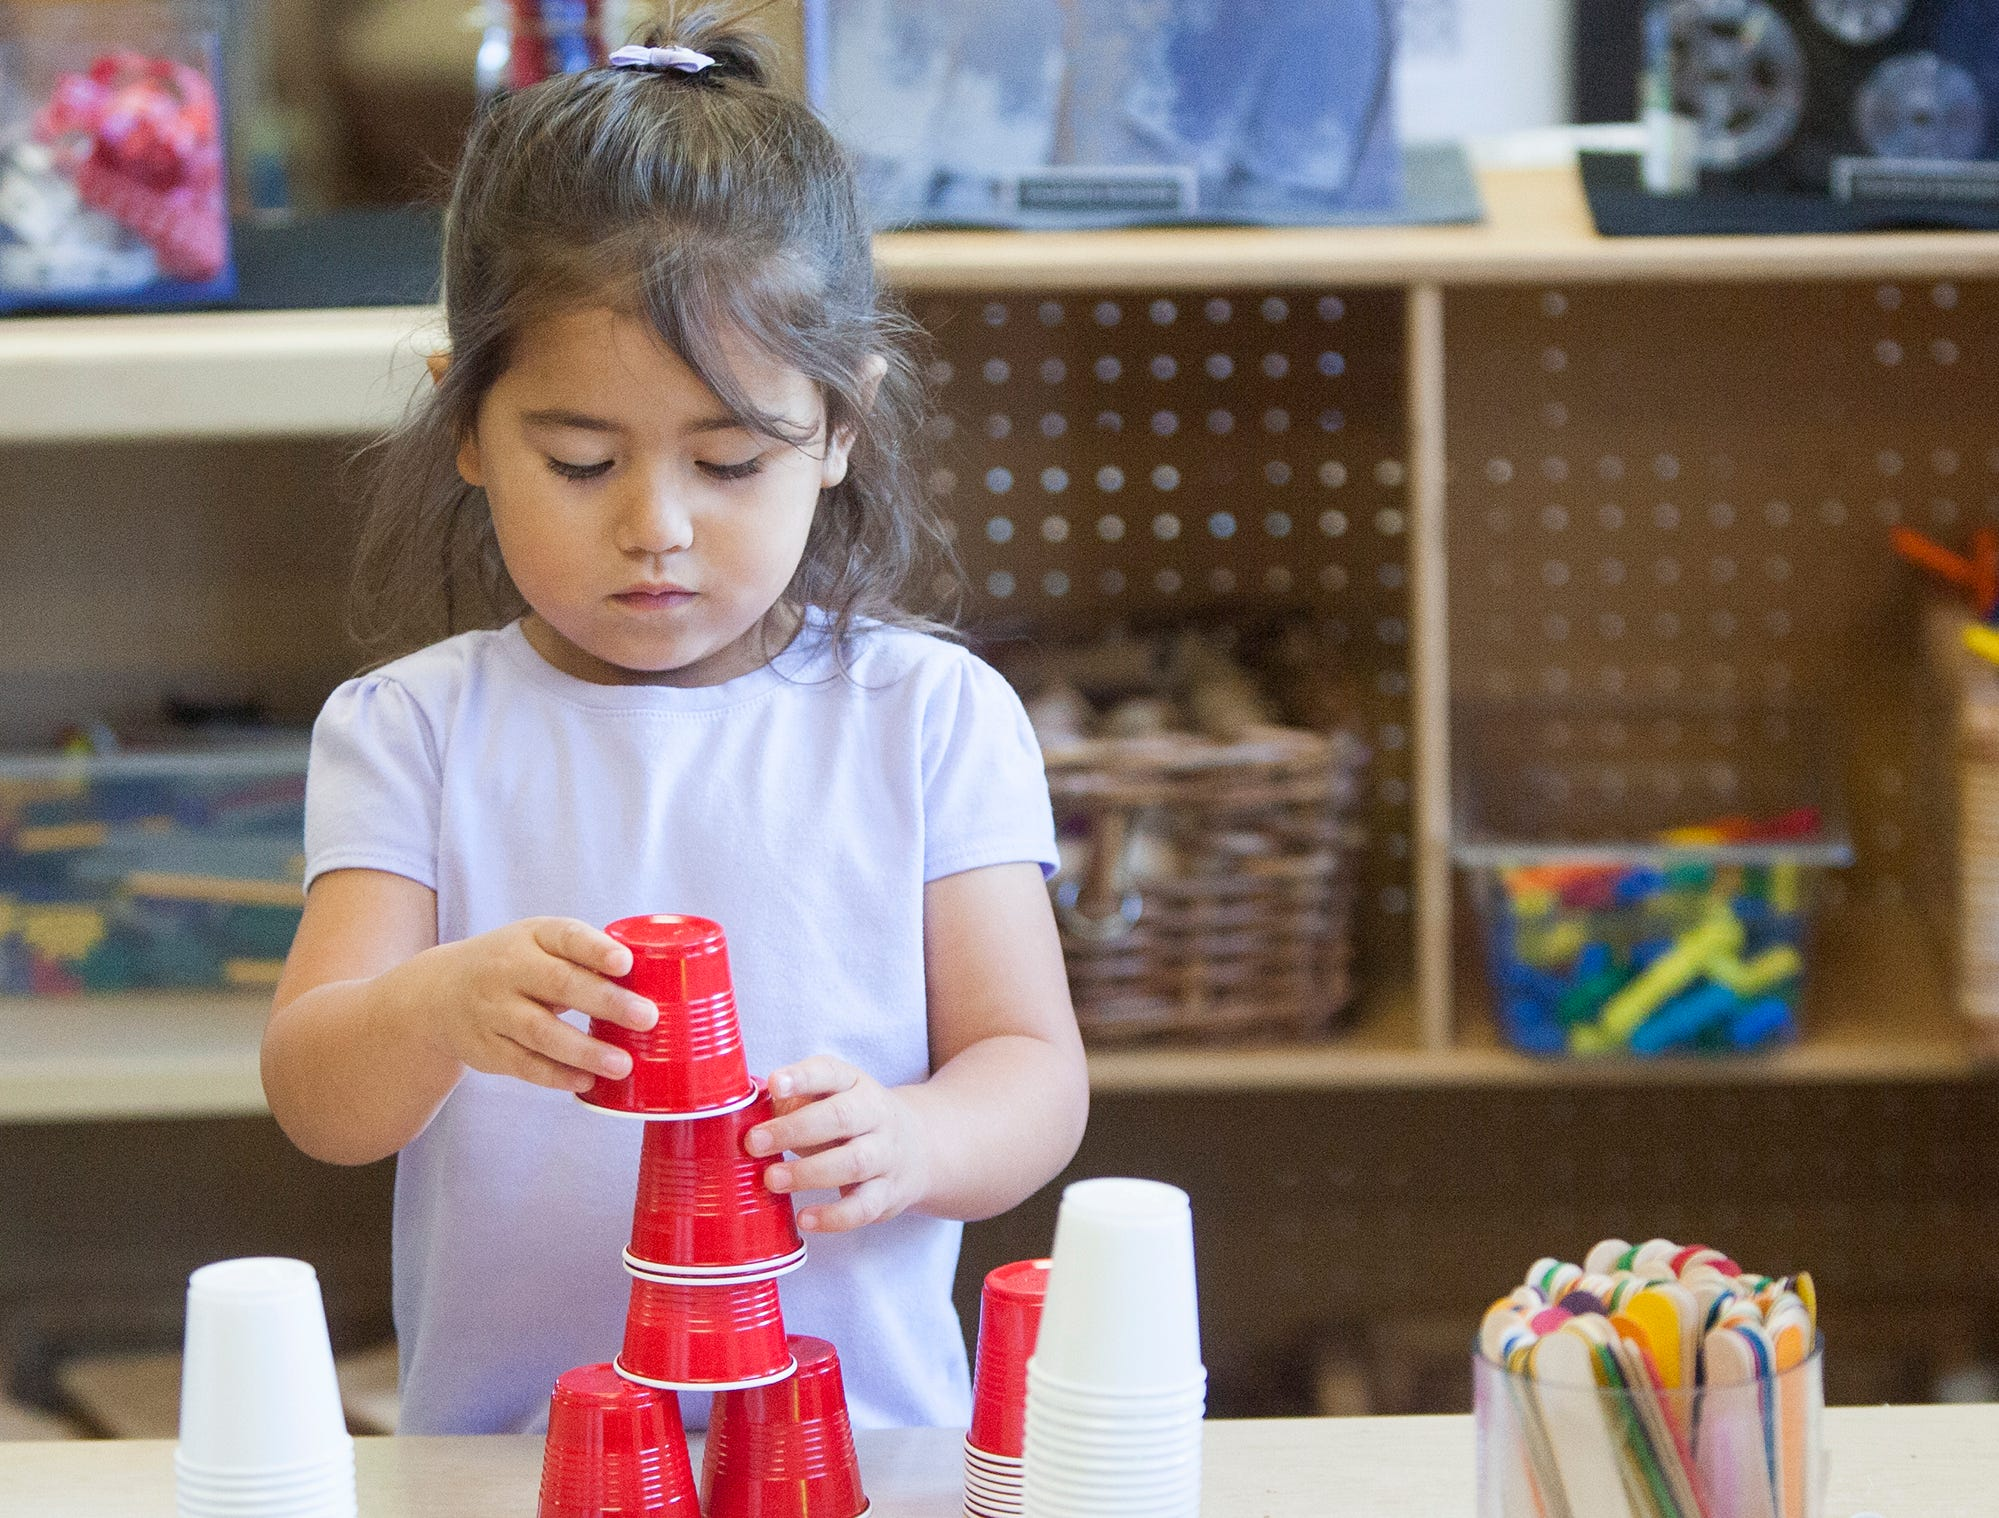 Evelyne works on cup stacking at the Ventura College child care center.